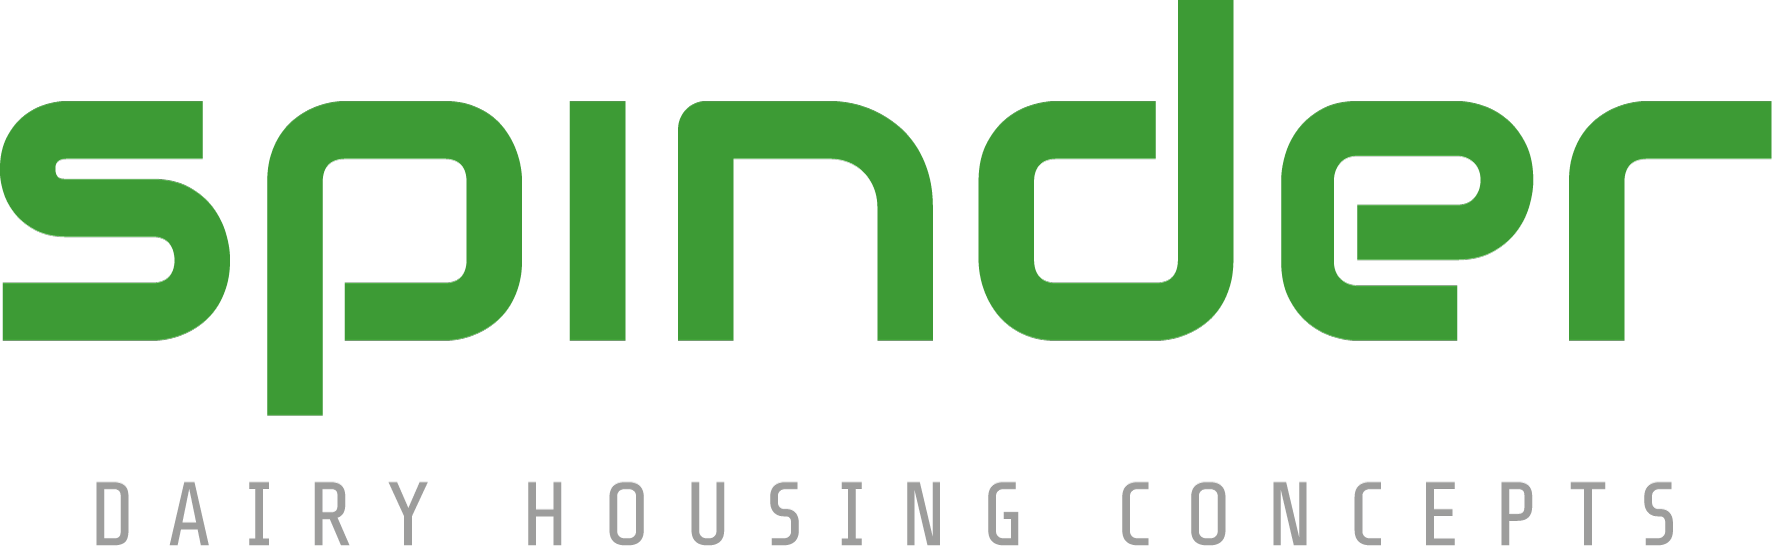 logo pinder-dairy-housing-concepts